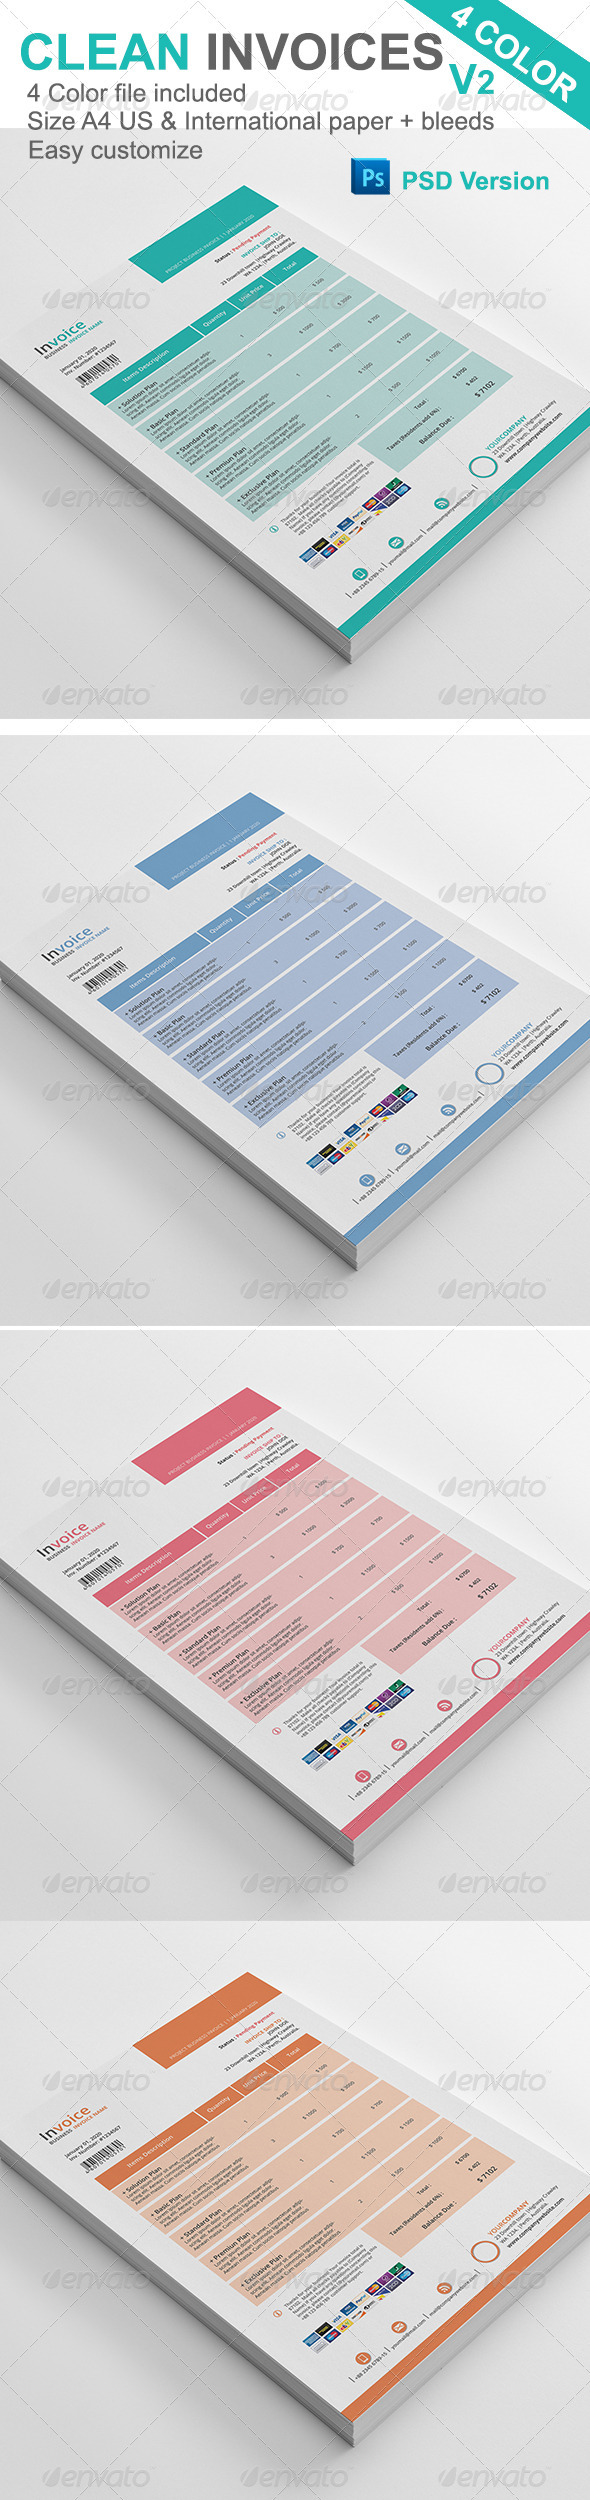 Gstudio Clean Invoices Template V2 - Proposals & Invoices Stationery